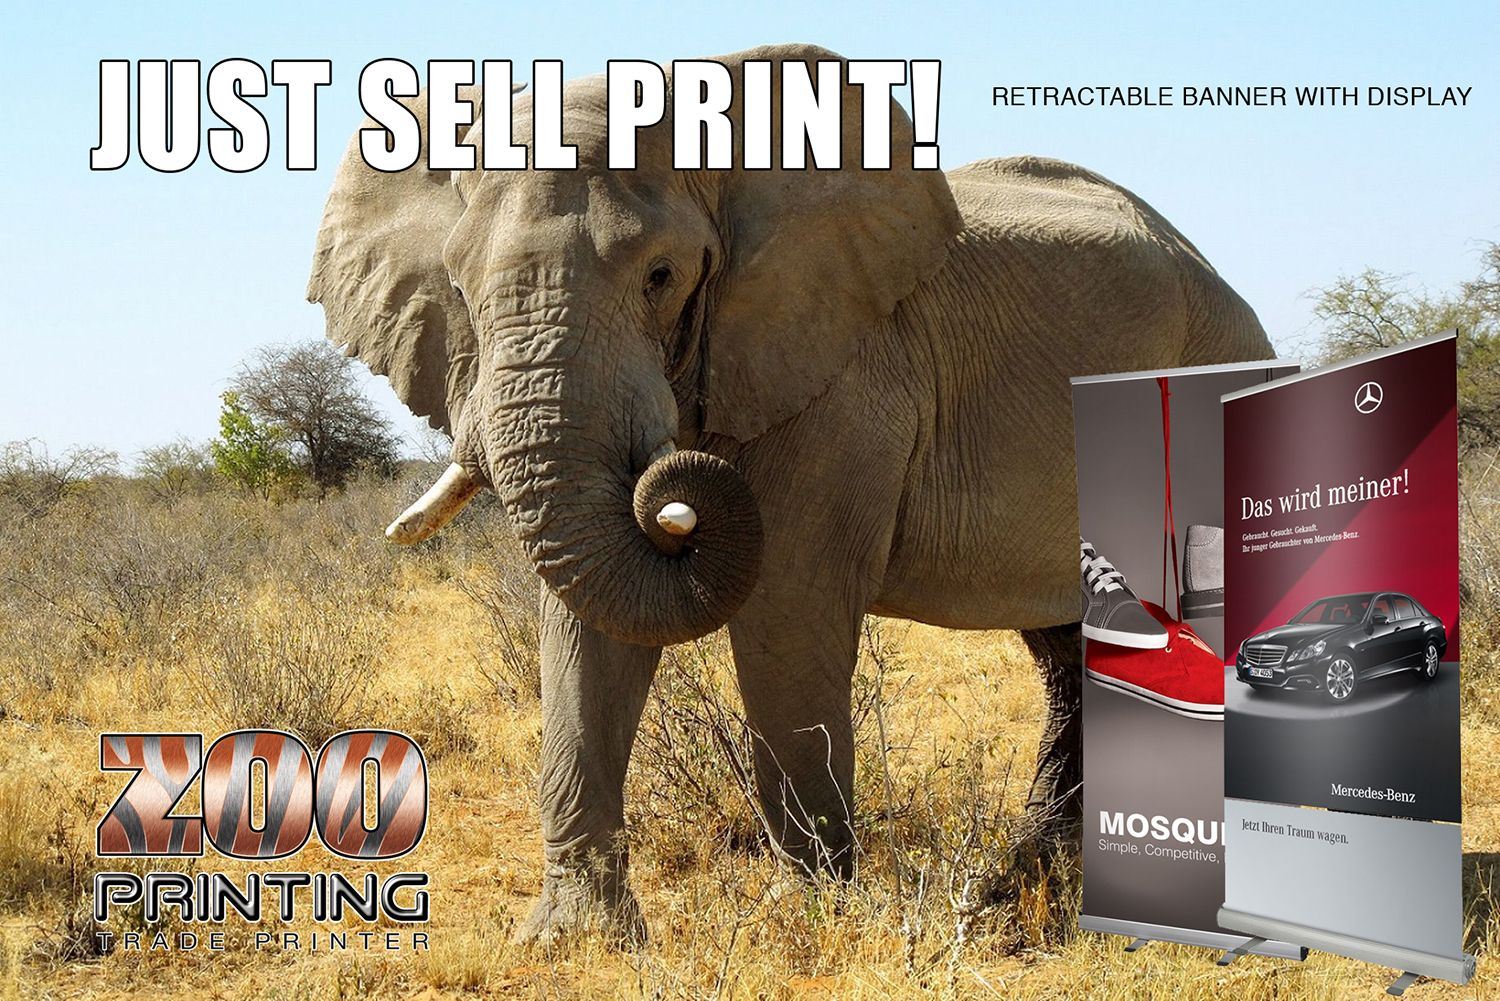 Zoo Printing Wholesale Printing. Sign Up Free Today! http://zooprint.us/6ISkL #Printing #GraphicDesigners #WholesalePrinting #ZooPrinting